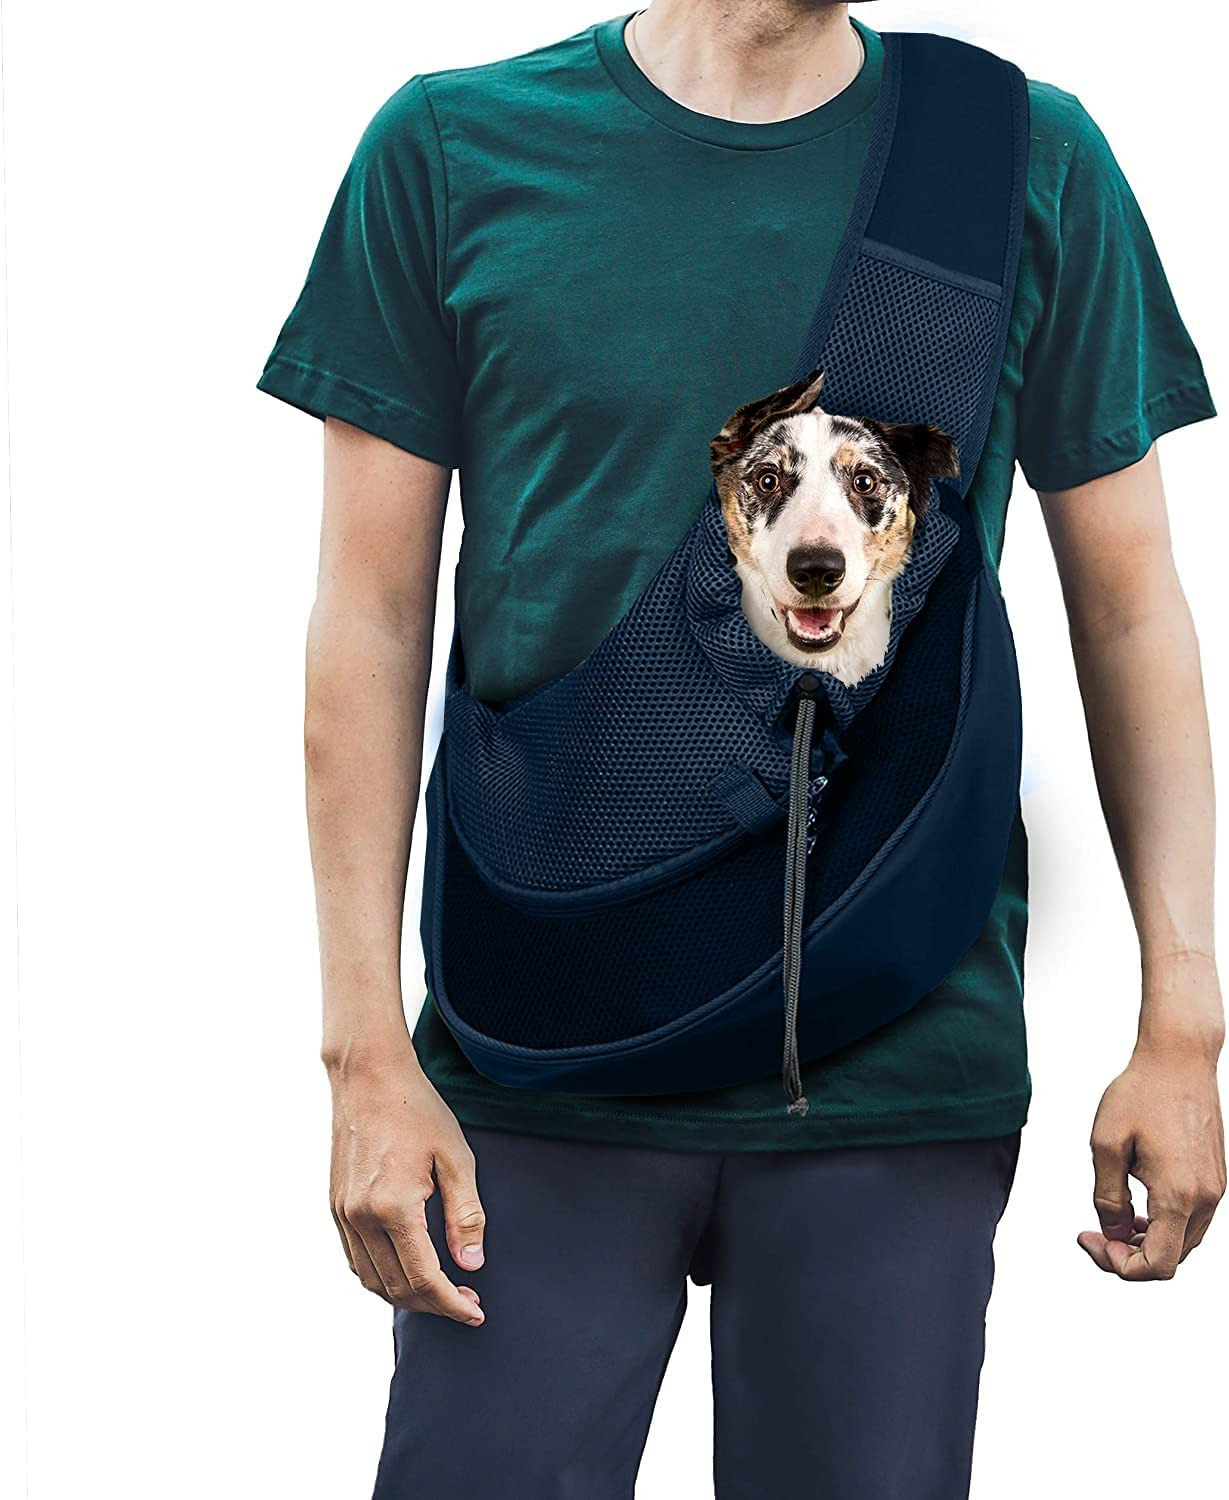 PetPawa Dog and Cat Nippon regular agency Sling 25% OFF Hands Tra Mesh Carrier Breathable Free